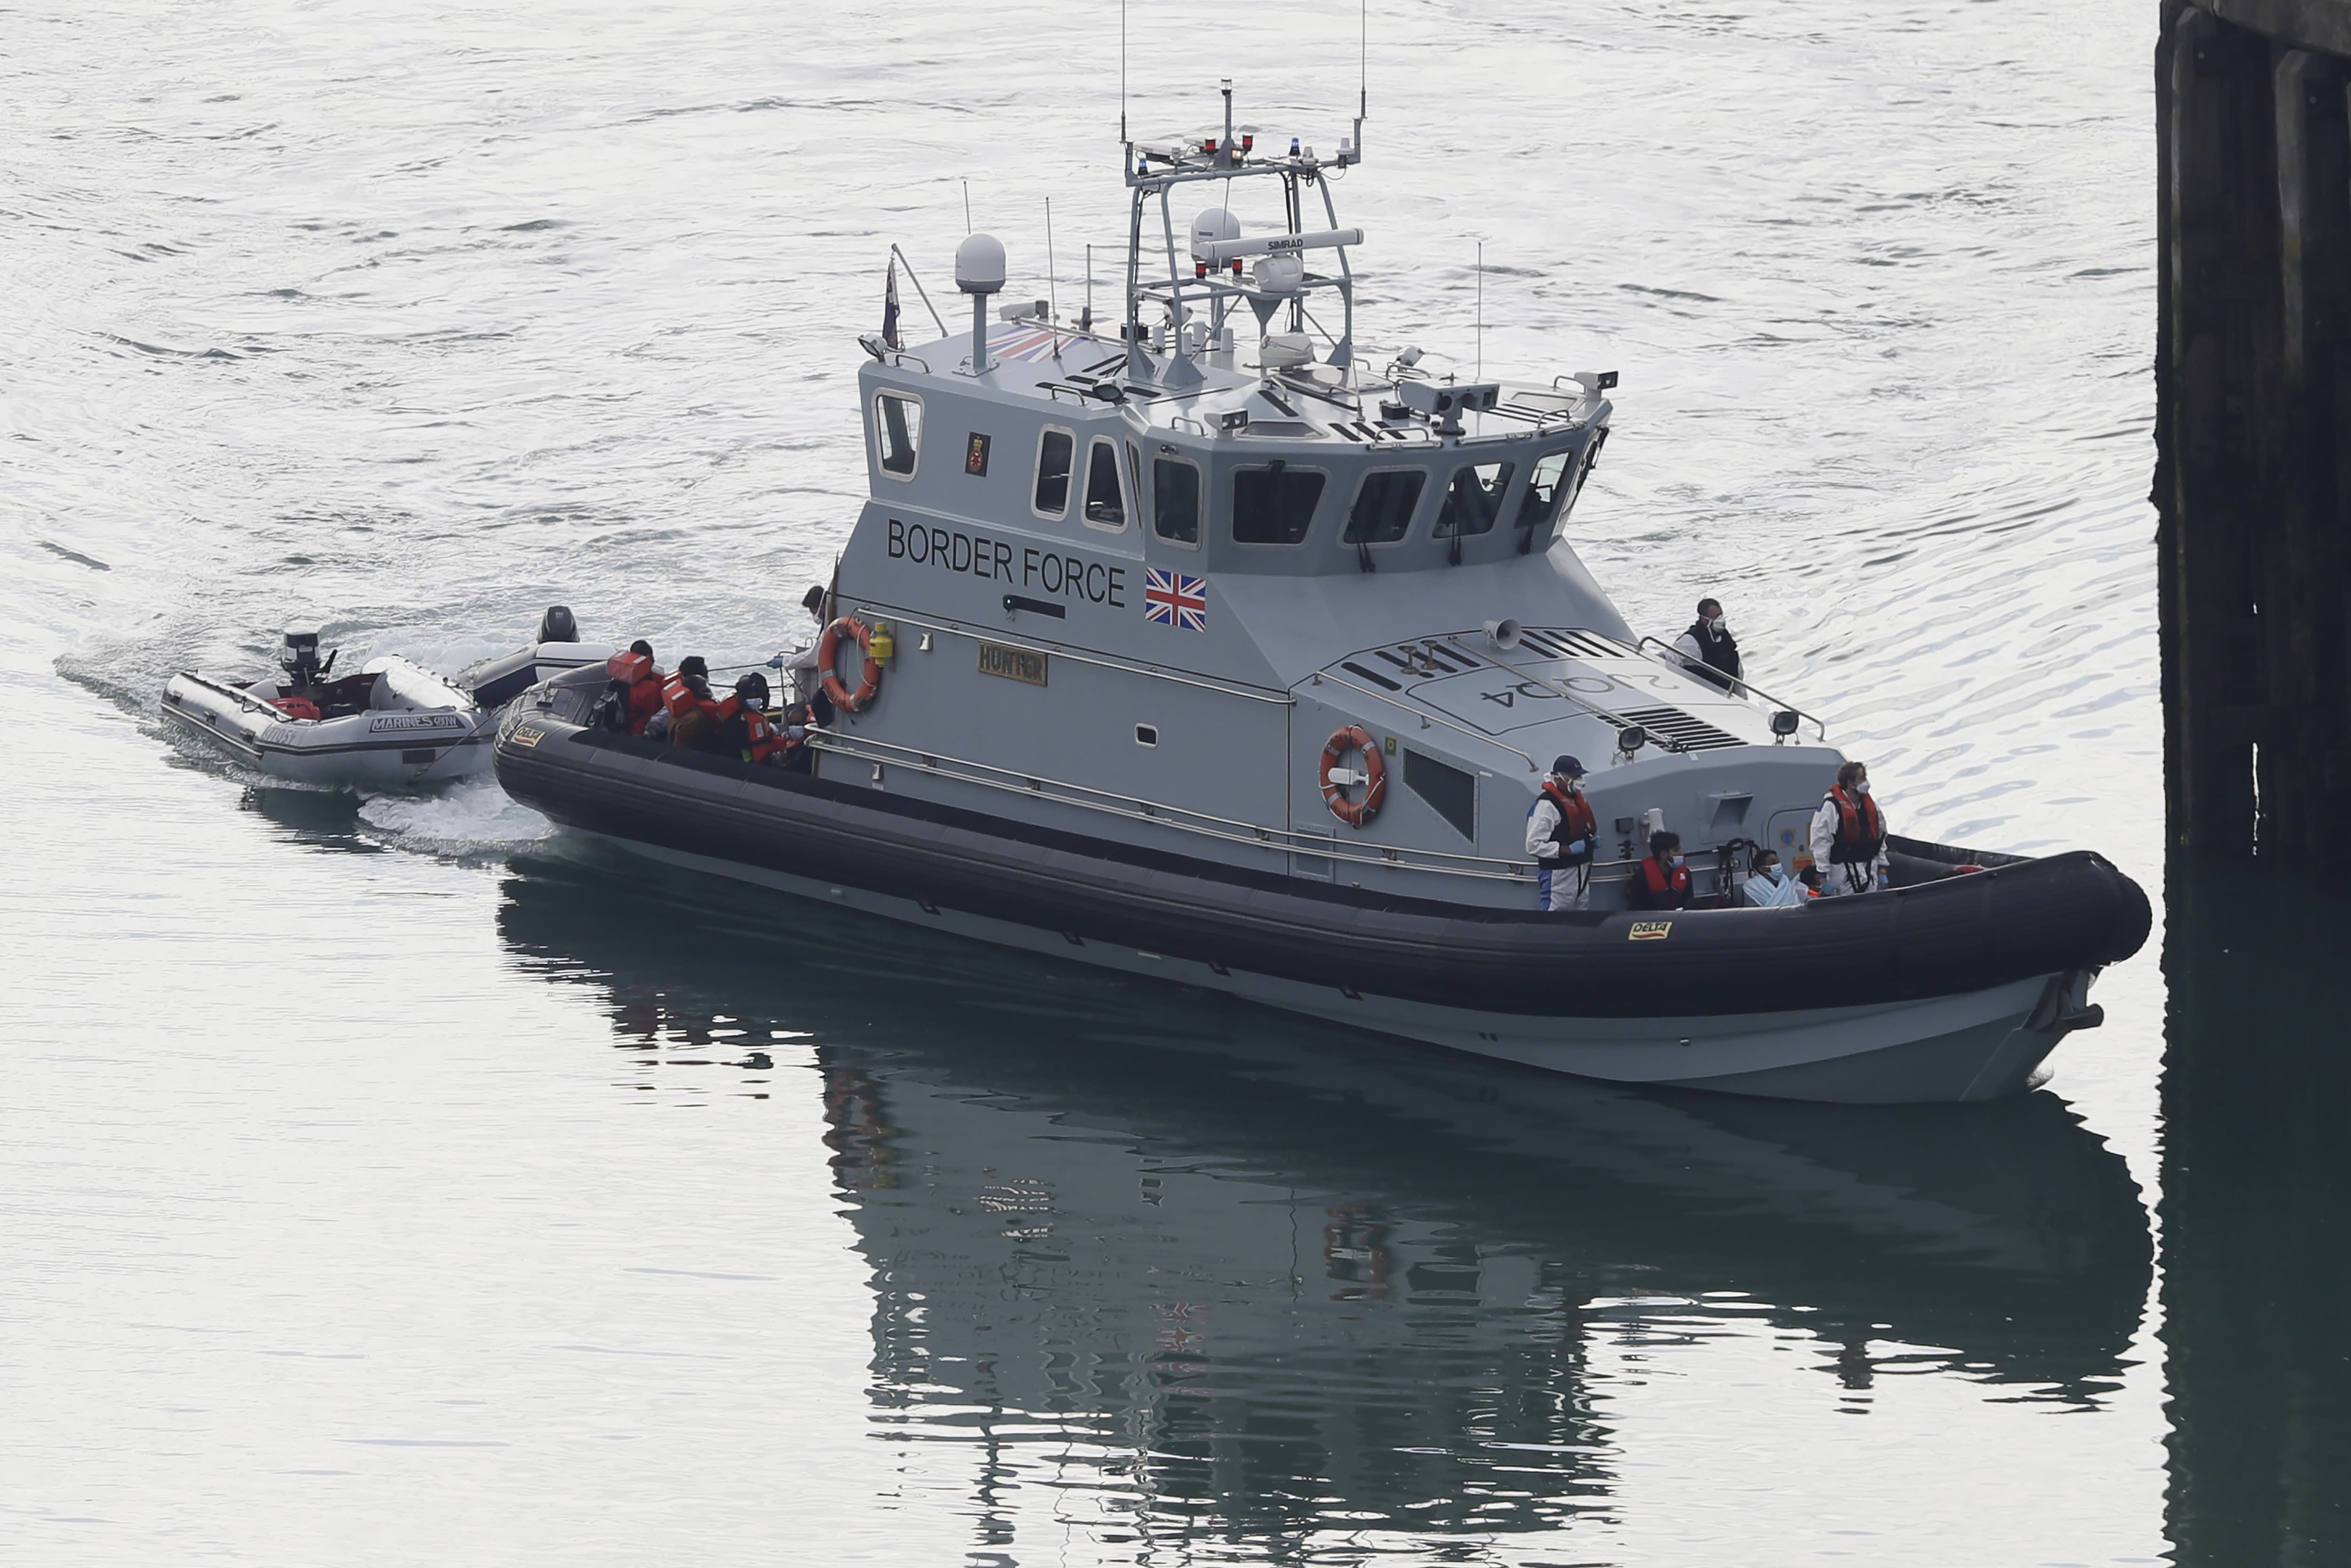 A Border Force vessel brings a group of people thought to be migrants into the port city of Dover, England, from small boats, Saturday Aug. 8, 2020. The British government says it will strengthen border measures as calm summer weather has prompted a record number of people to attempt the risky sea crossing in small vessels, from northern France to England. (AP Photo/Kirsty Wigglesworth)